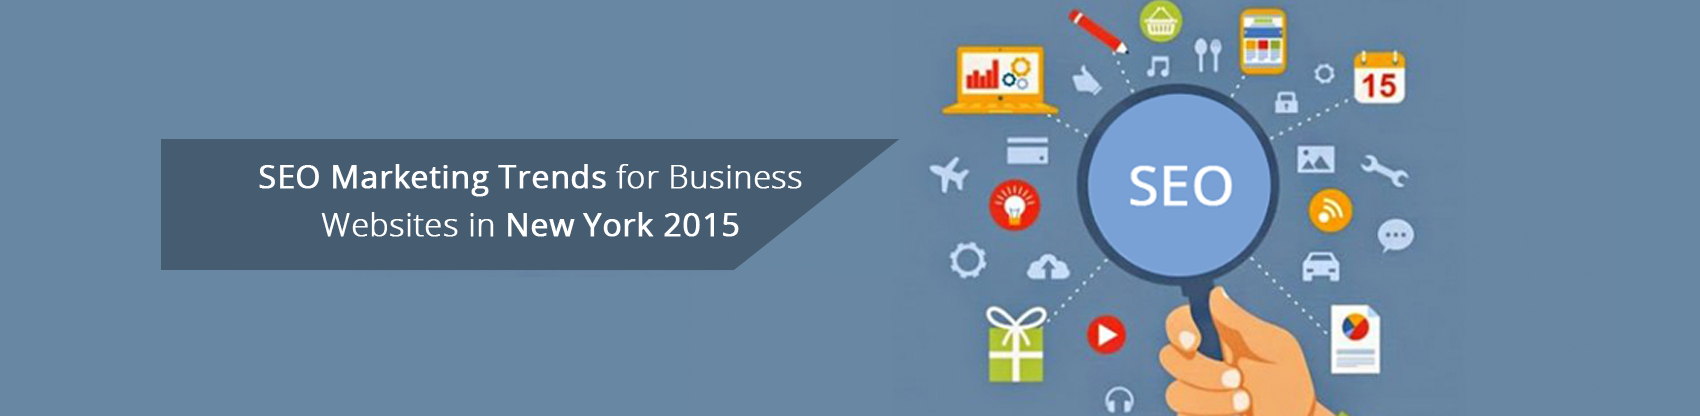 SEO Marketing Trends for Business Websites in New York